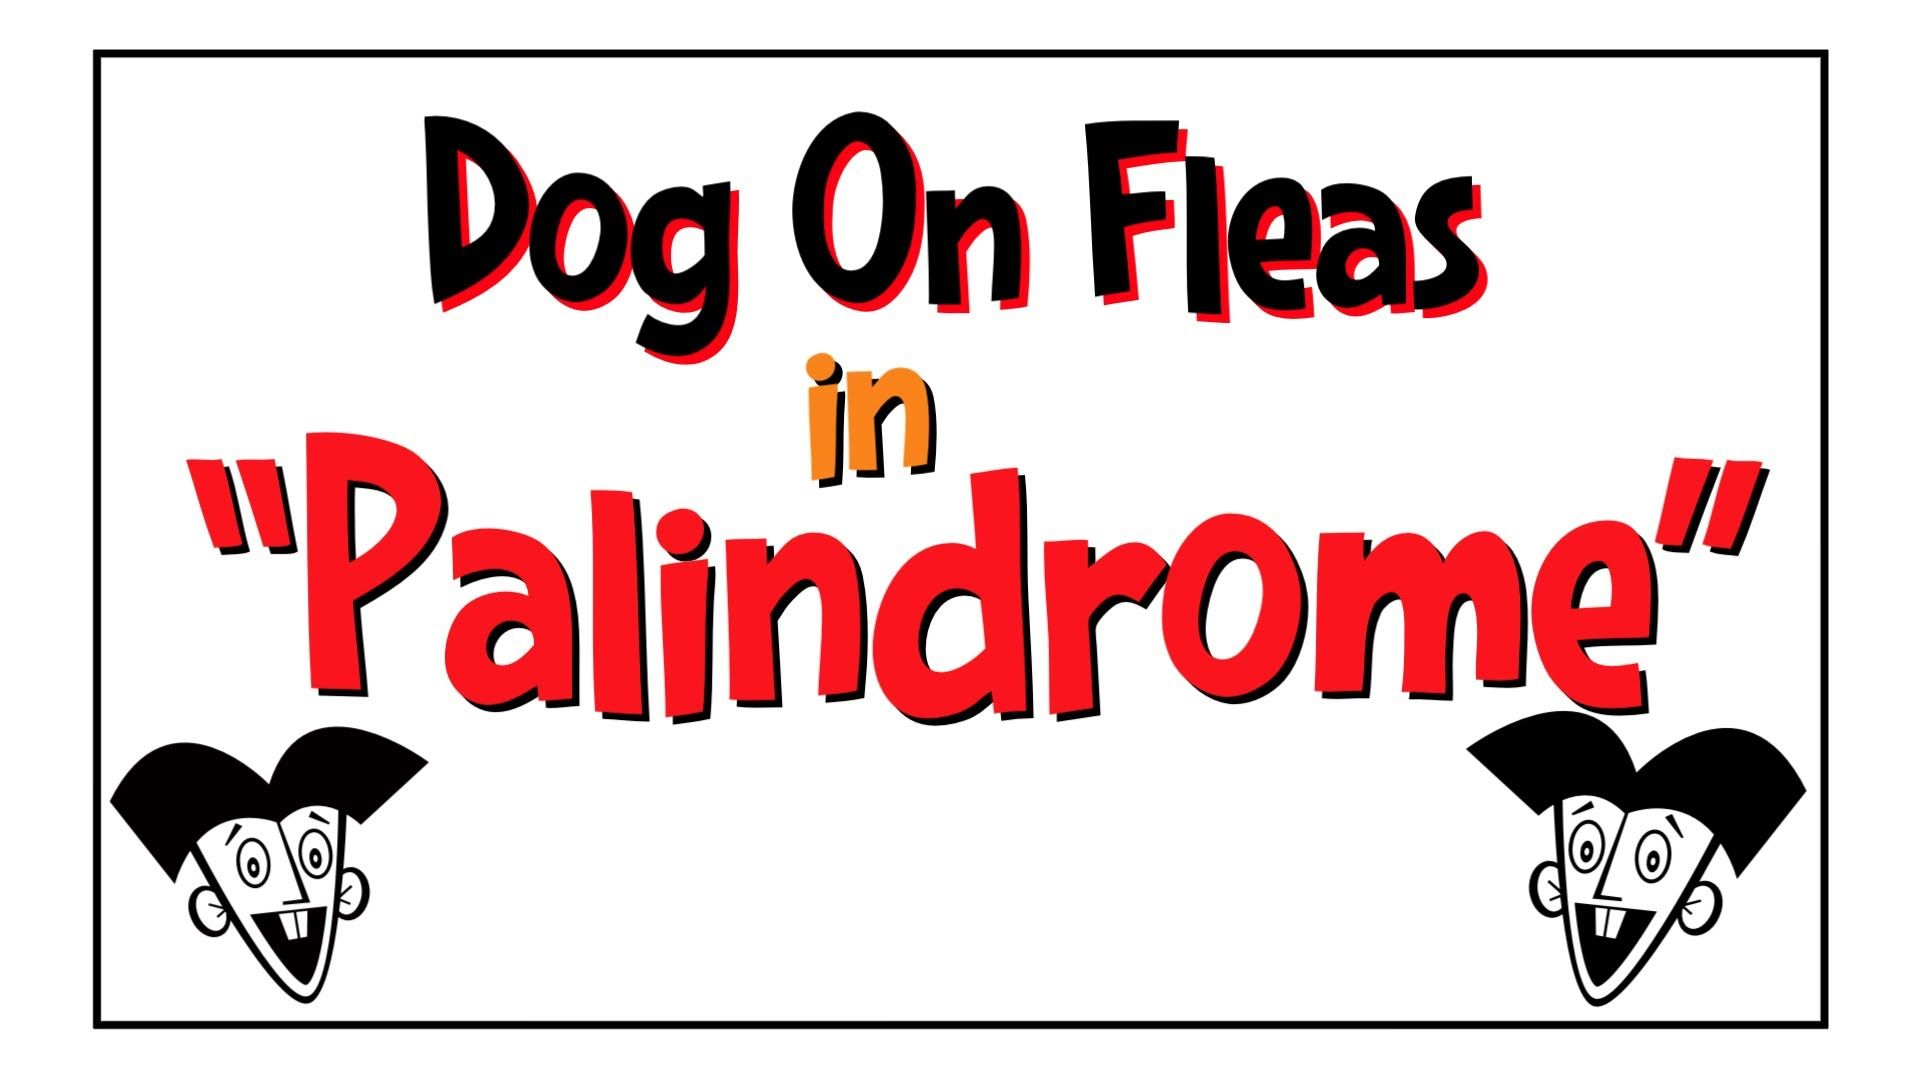 Learn All About Palindromes Fleas Learning Stations Dogs